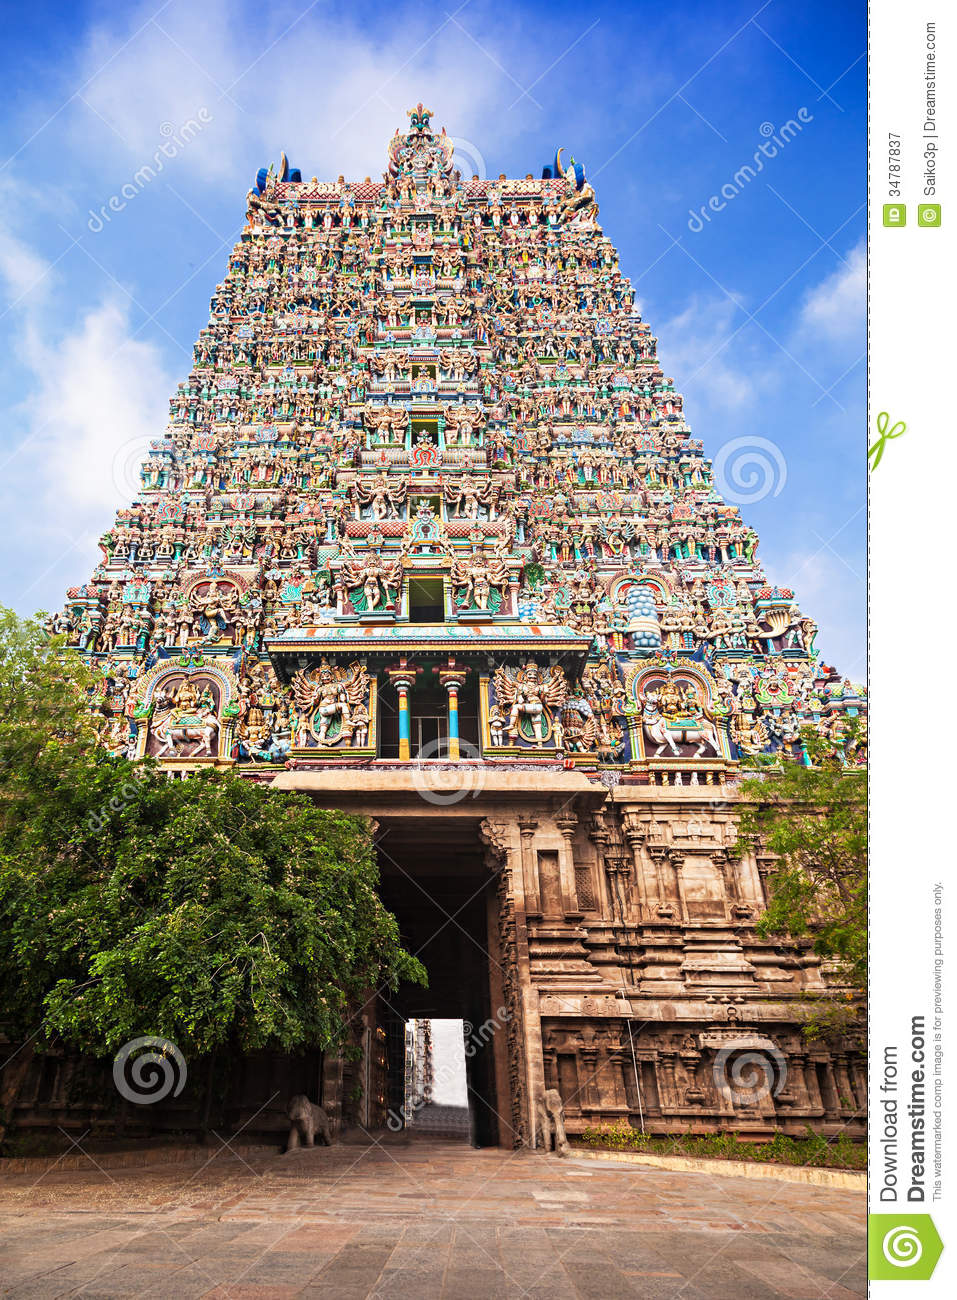 Meenakshi Temple Royalty Free Stock Photography - Image: 34787837